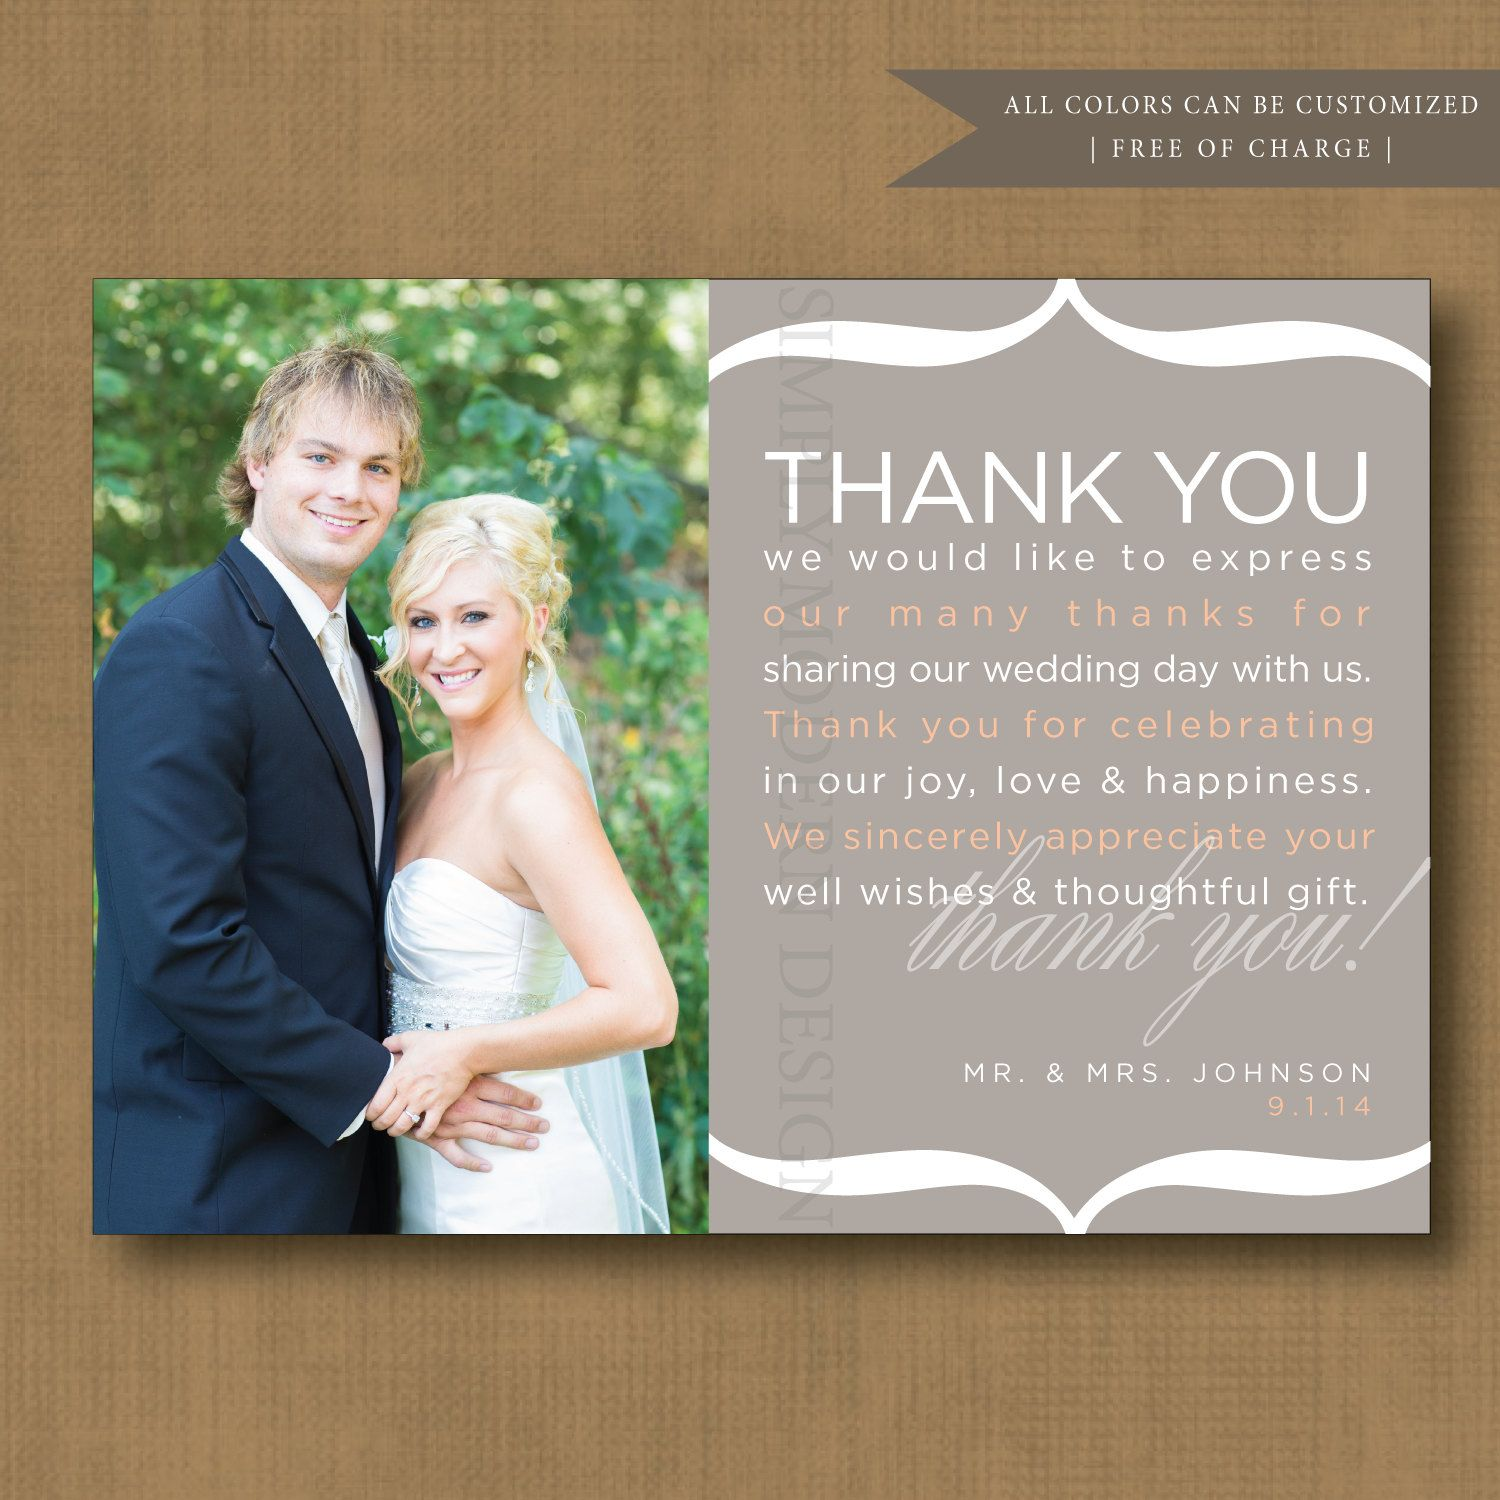 Pre Written Thank You Note Wedding Card Printable 15 00 Via Etsy Thankyou